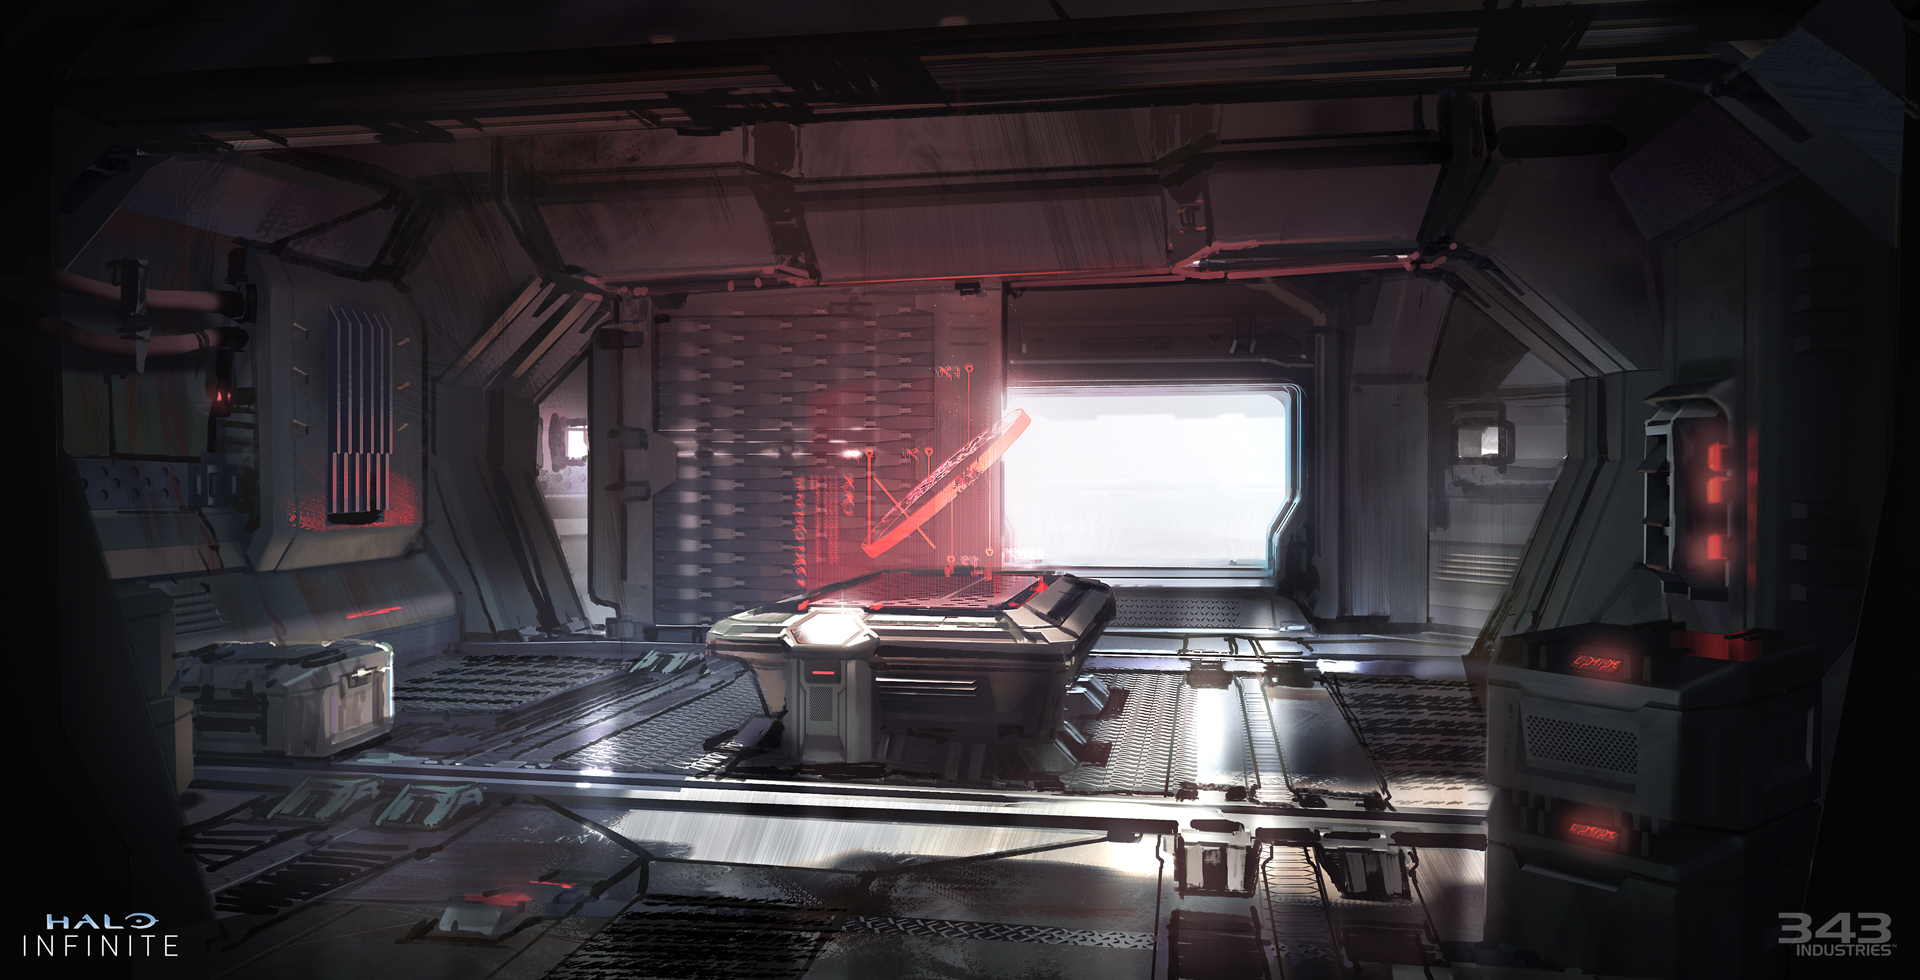 Concept art of what the inside of a Banished building could look like.